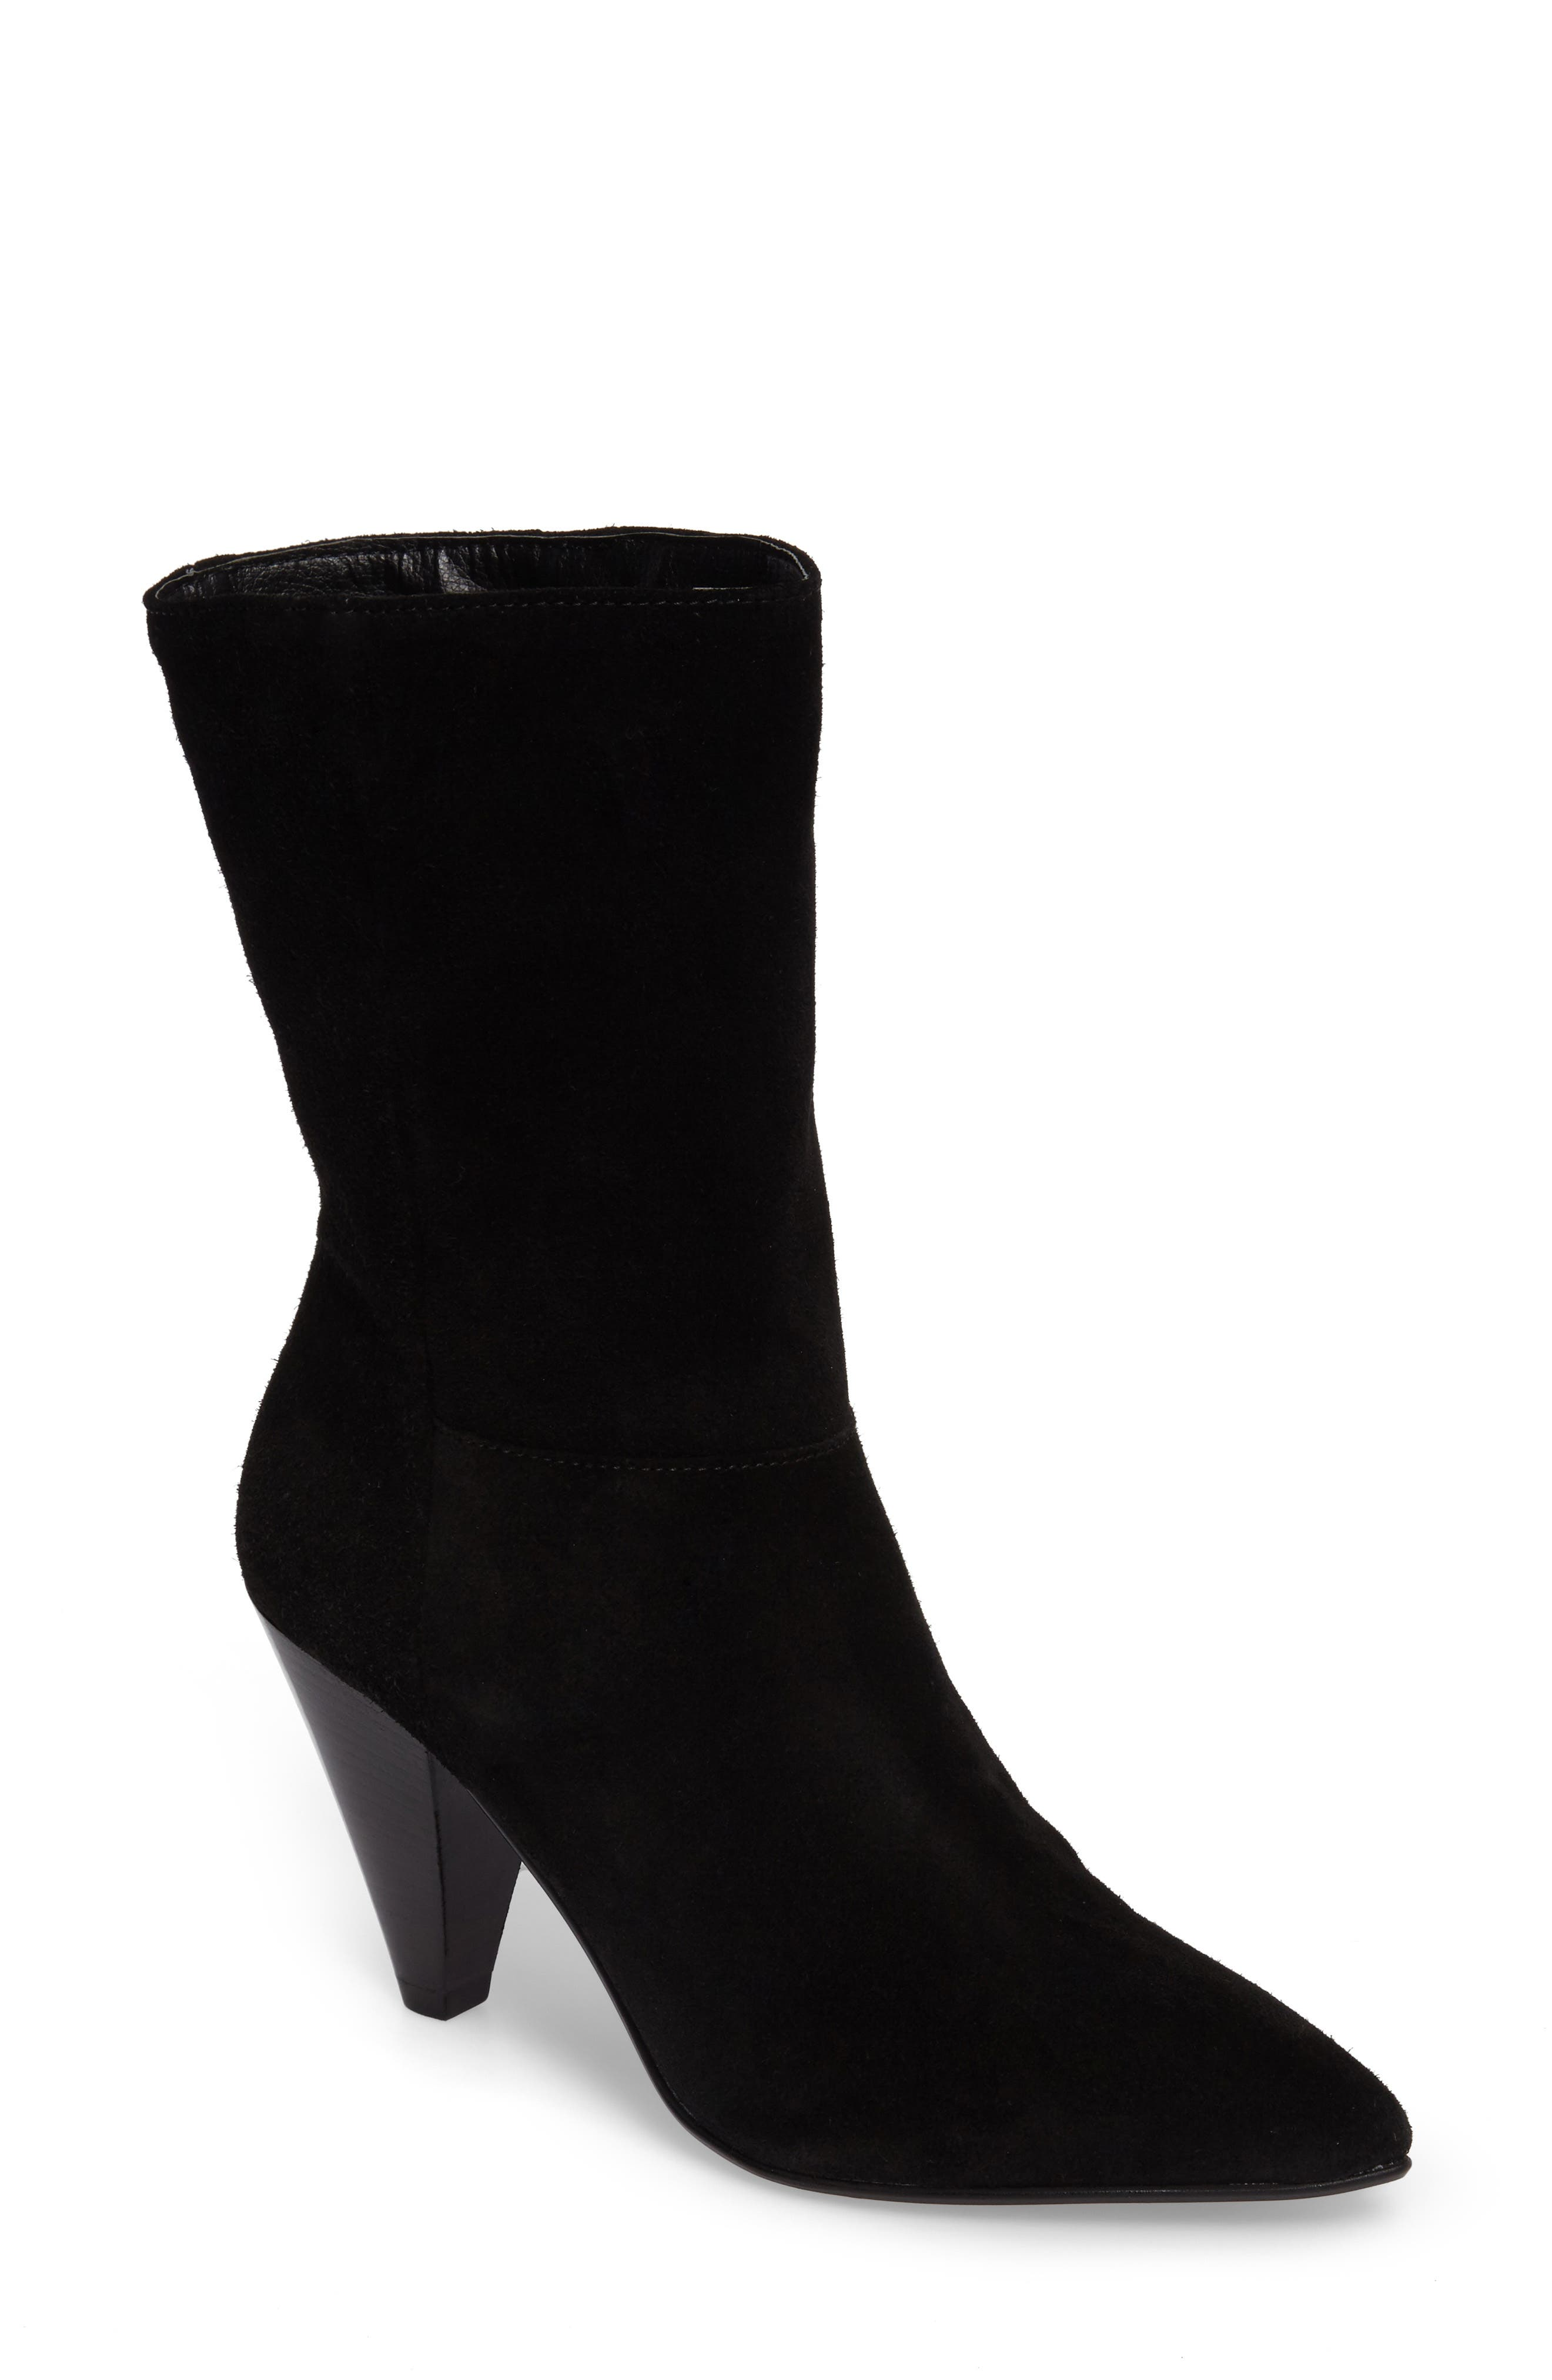 Alternate Image 1 Selected - Topshop Hollie Pointy Toe Bootie (Women)